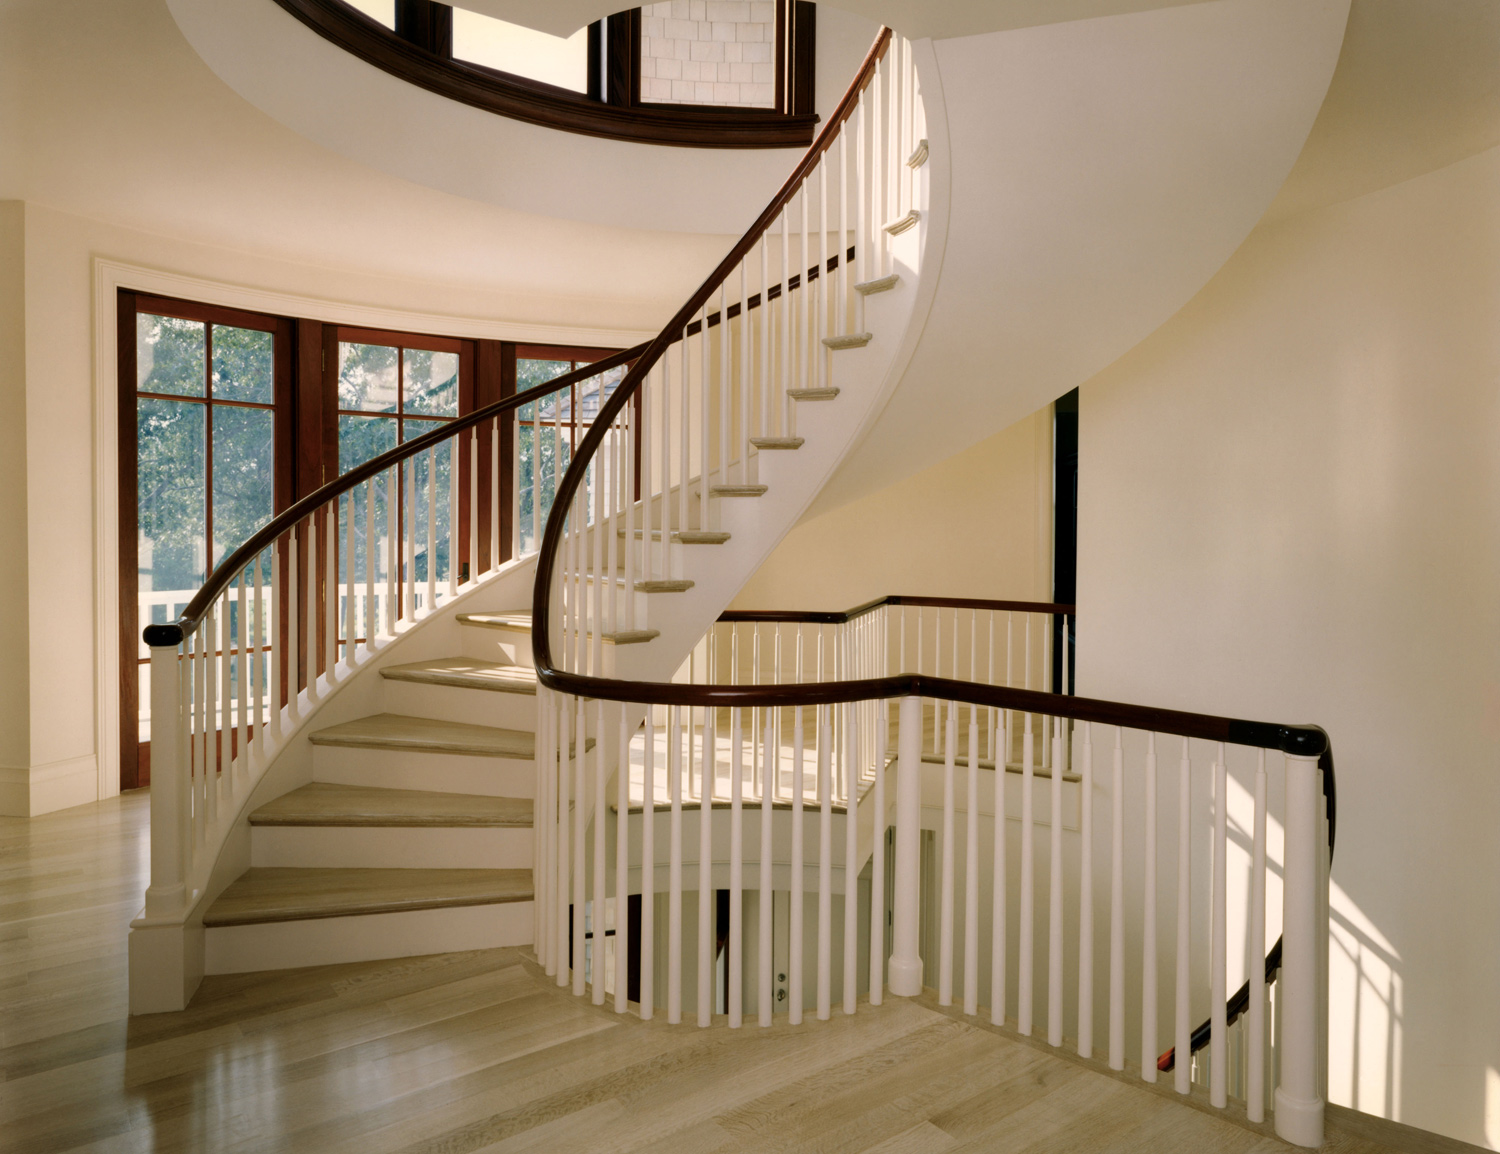 Smith_Cape_Stair2.jpg